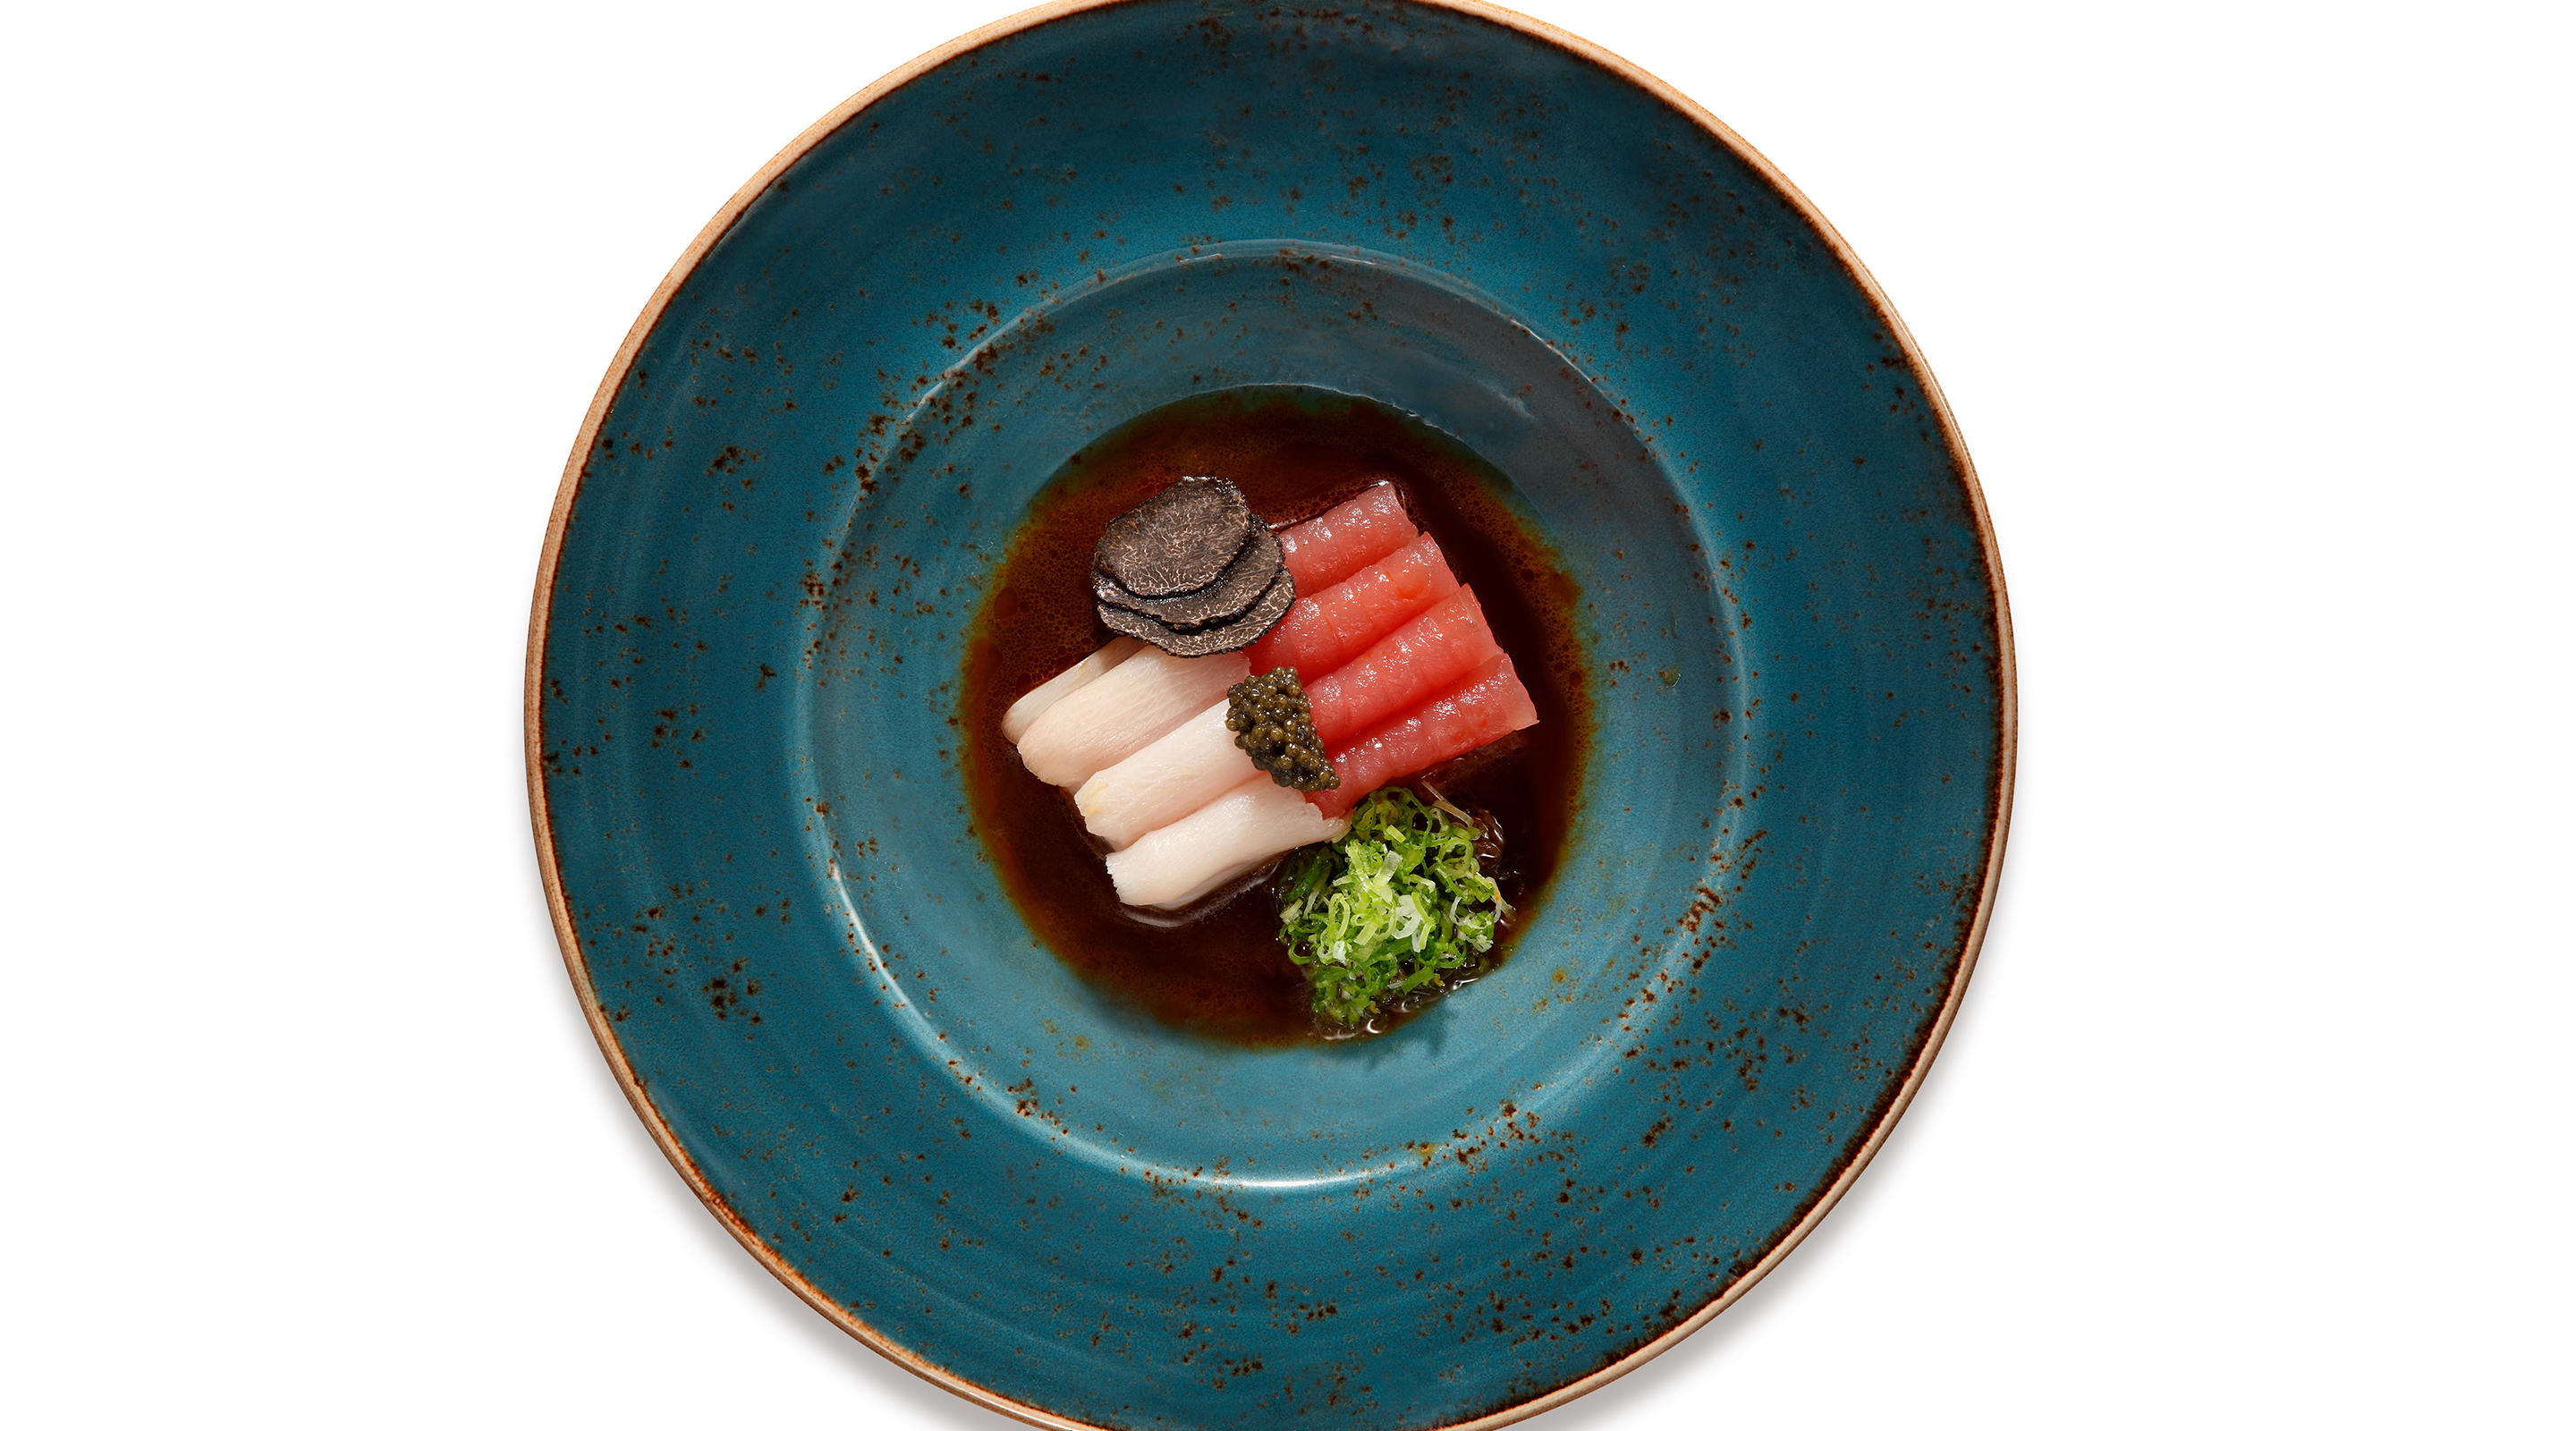 Enjoy signature dishes such as the Truffle Sashimi at CATCH.